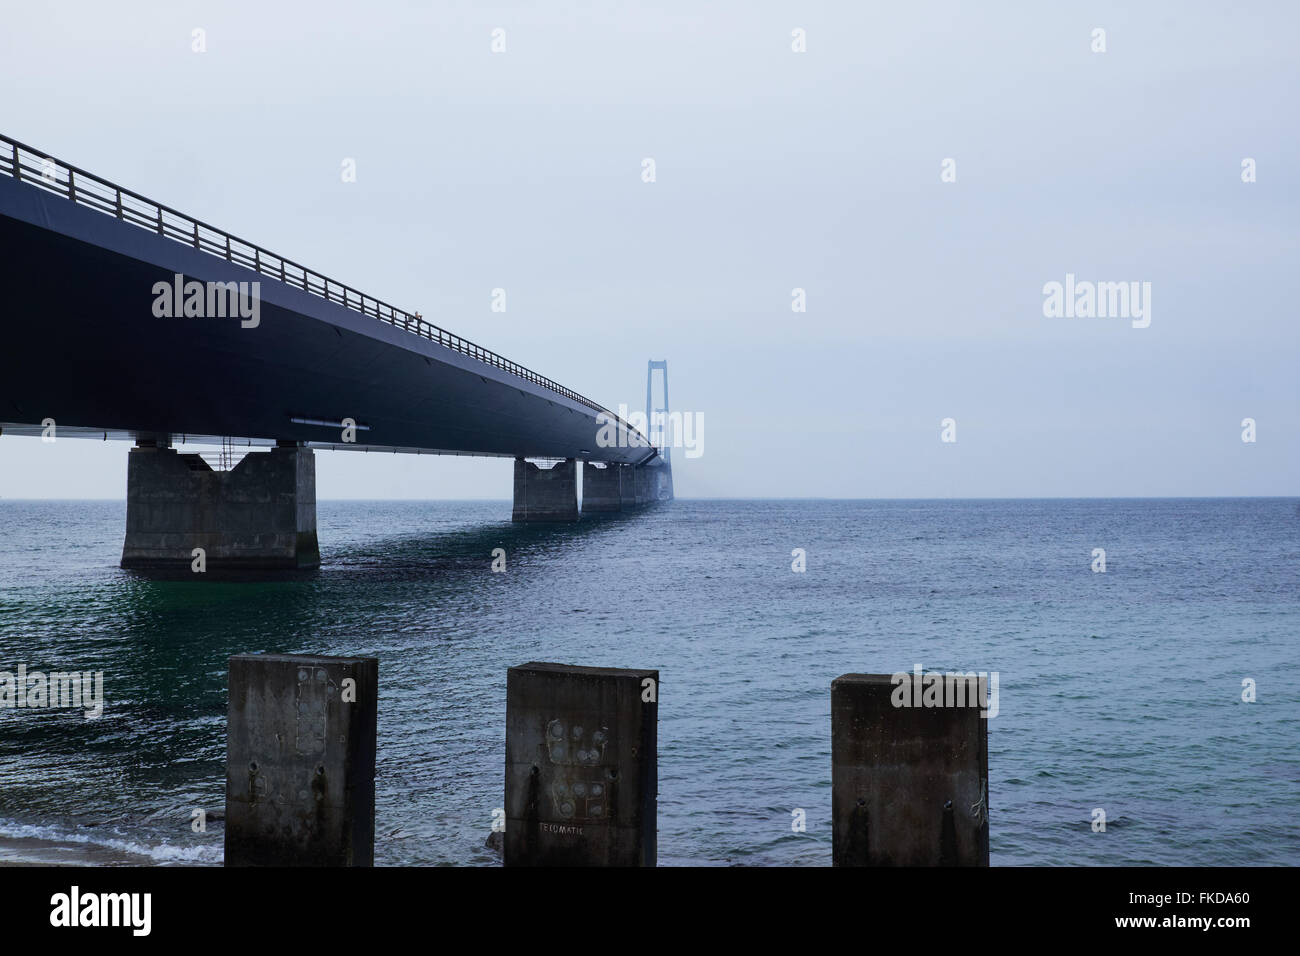 A look under neath the Great belt bridge seen from the Sealand side - Stock Image